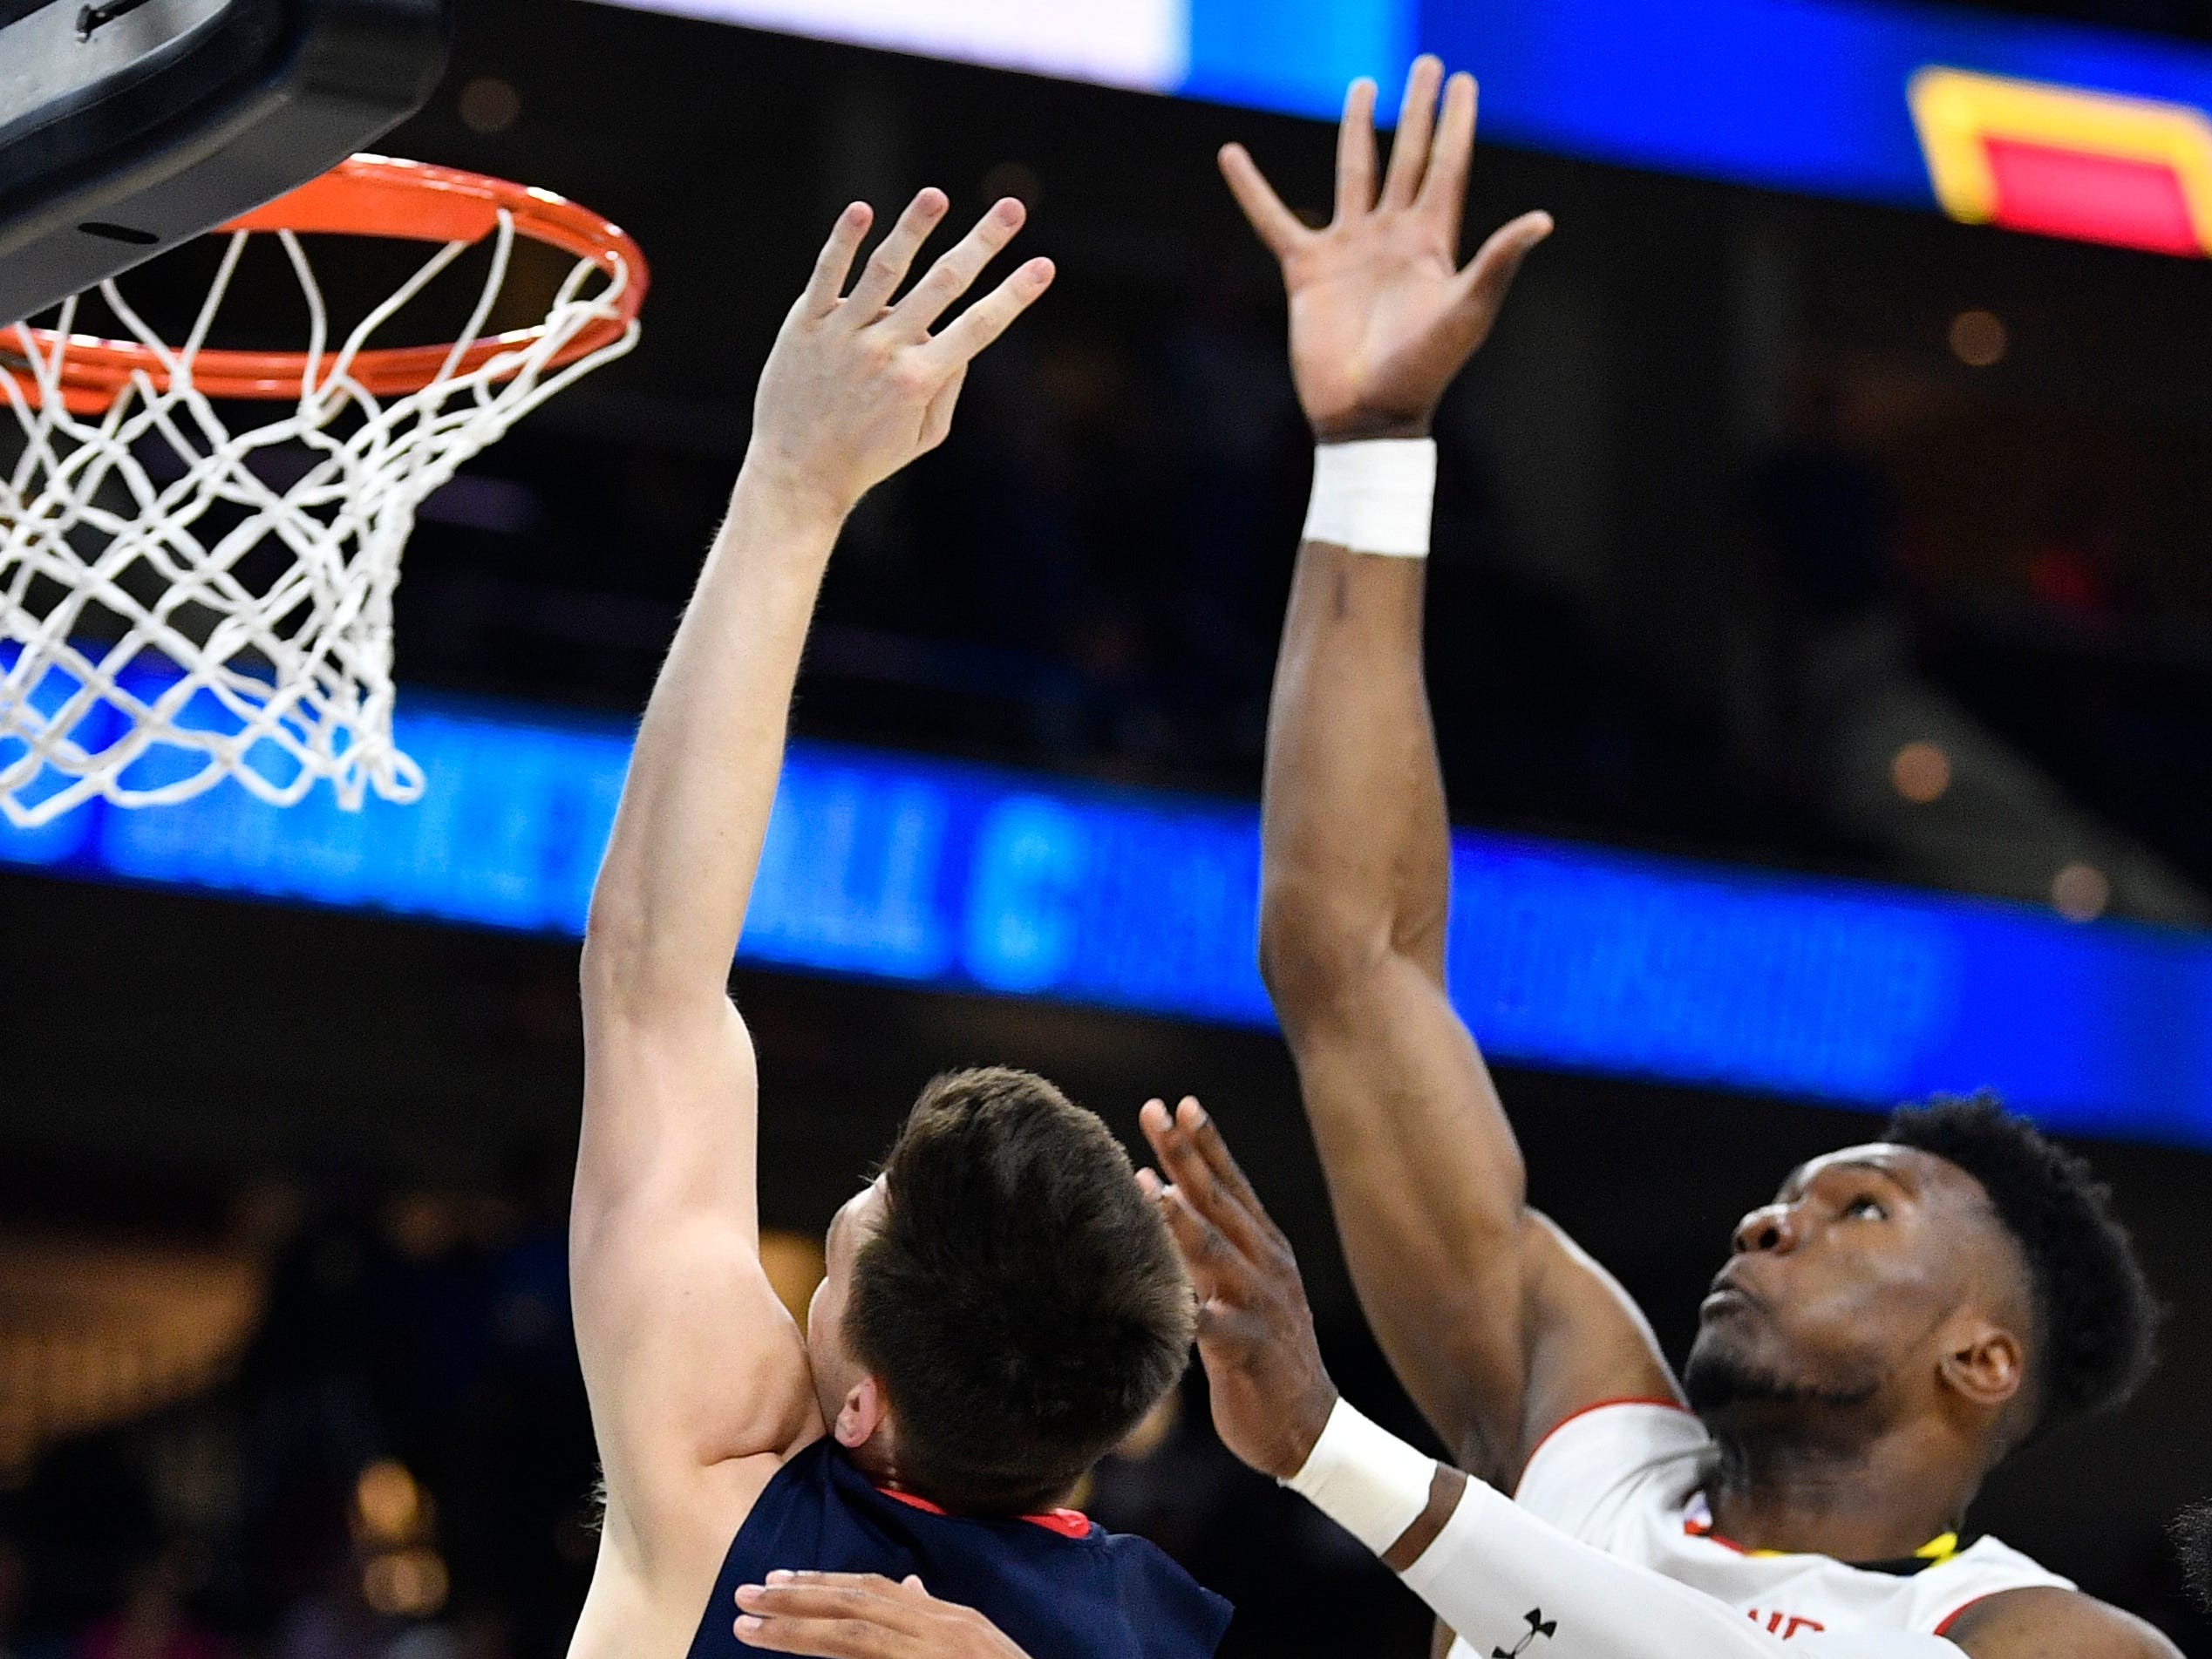 Belmont guard Grayson Murphy (2) and Maryland forward Bruno Fernando (23) battle under the basket during the first half of the first-round NCAA college basketball tournament game at VyStar Veterans Memorial Arena in Jacksonville, Fla., Thursday, March 21, 2019.